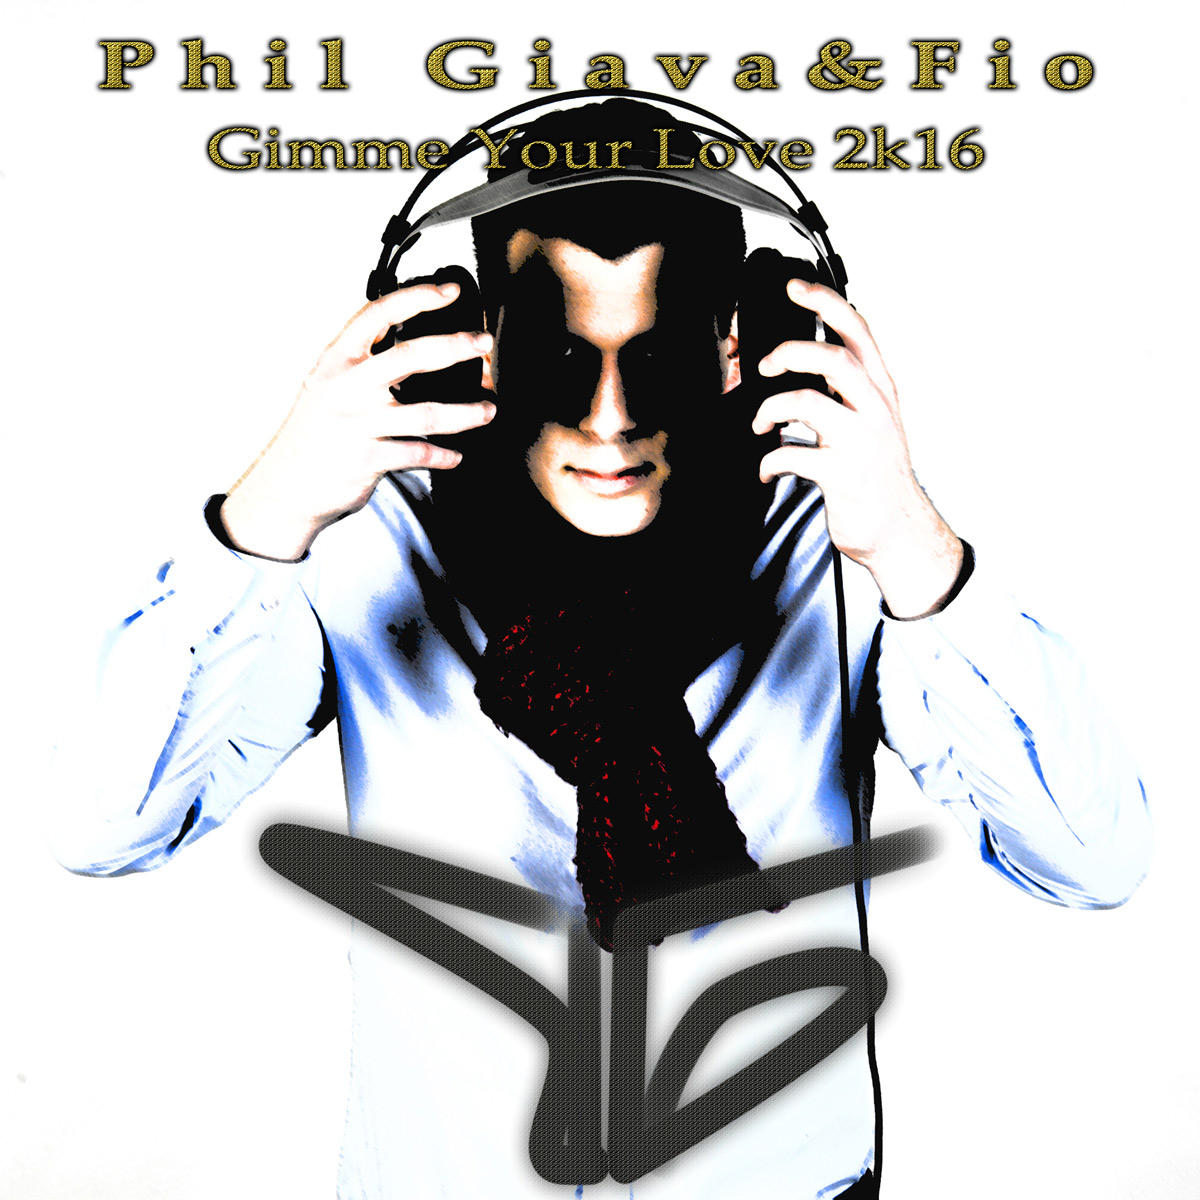 Phil Giava & Fio - Gimme Your Love 2K16 - CoverArt - 1200